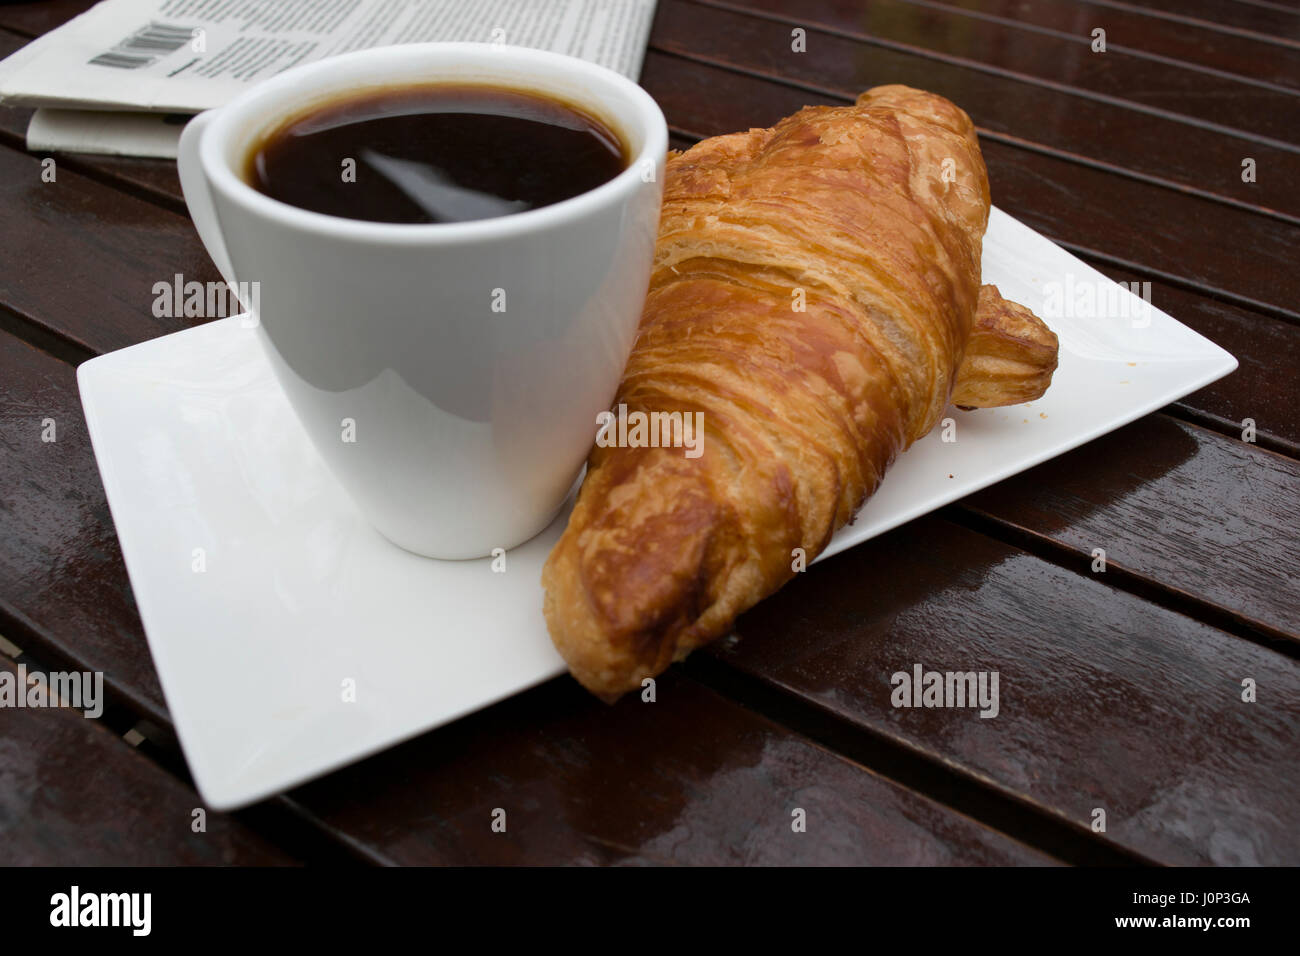 A cup of black coffee and a French croissant, a newspaper on a wooden table, outside. - Stock Image